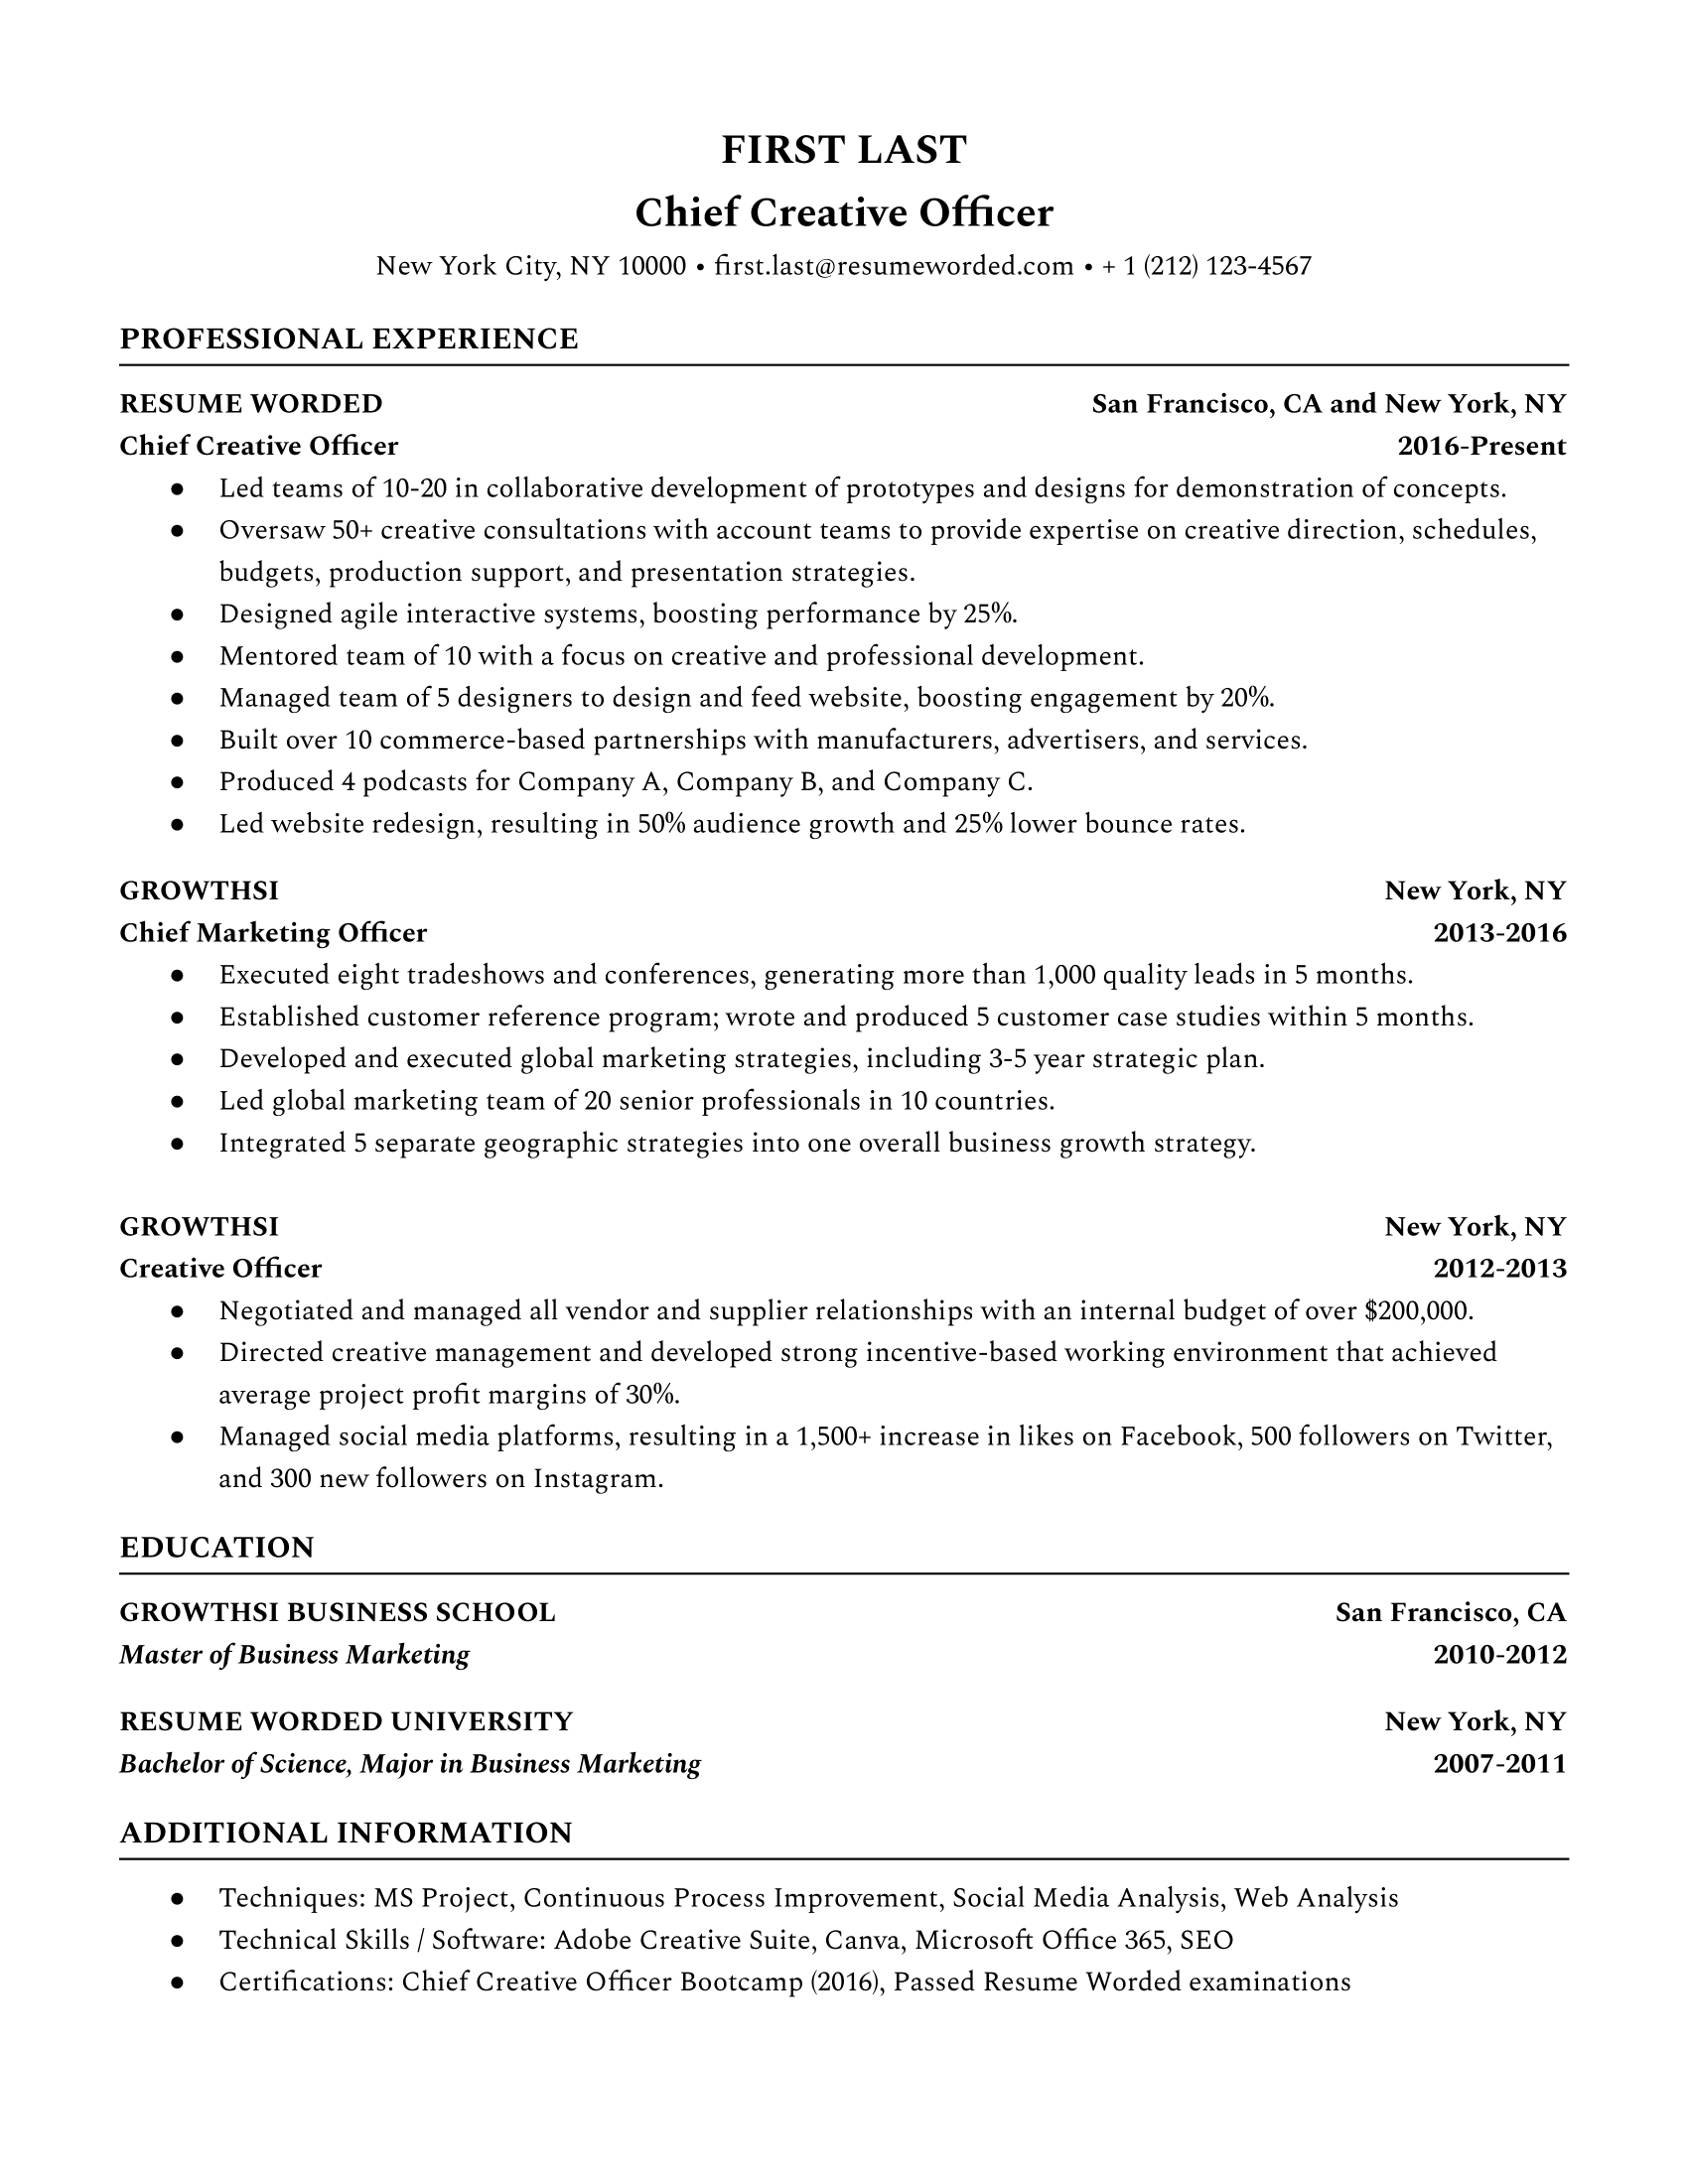 Chief Creative Officer Resume Sample